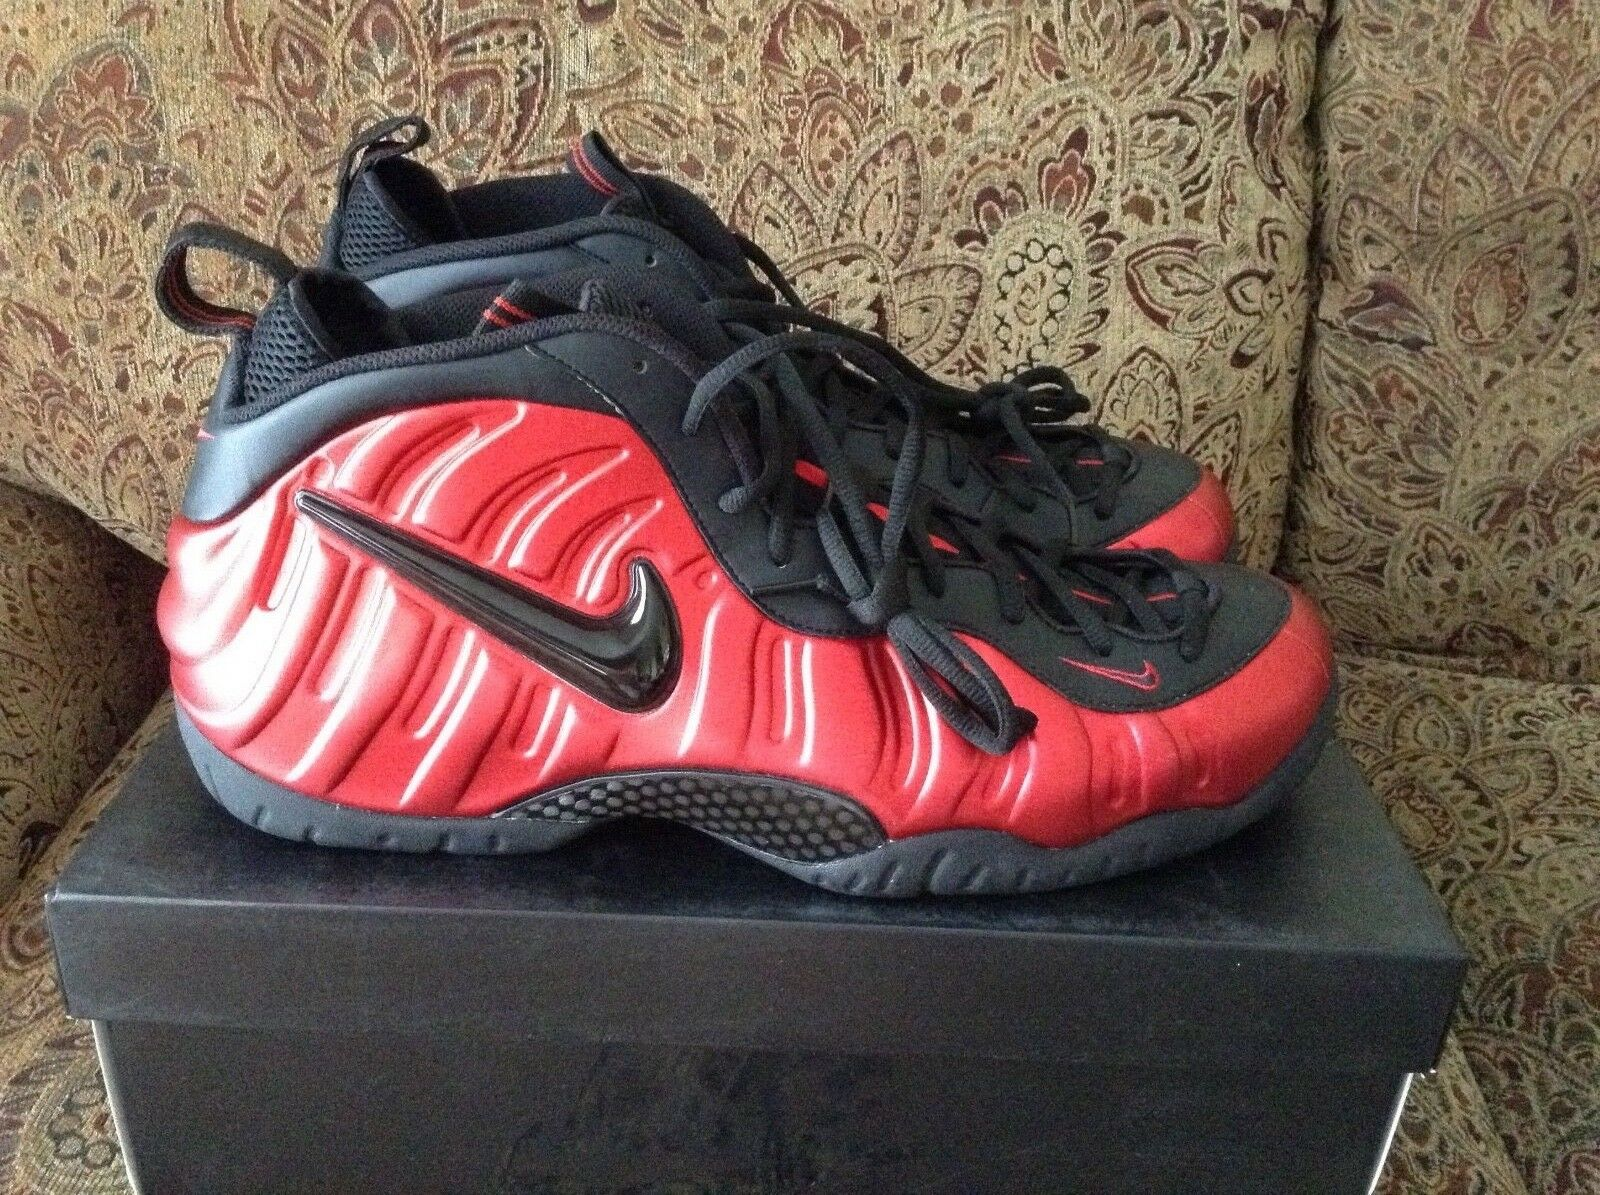 Nike Air Foamposite Pro University Red 624041-604 Size 18